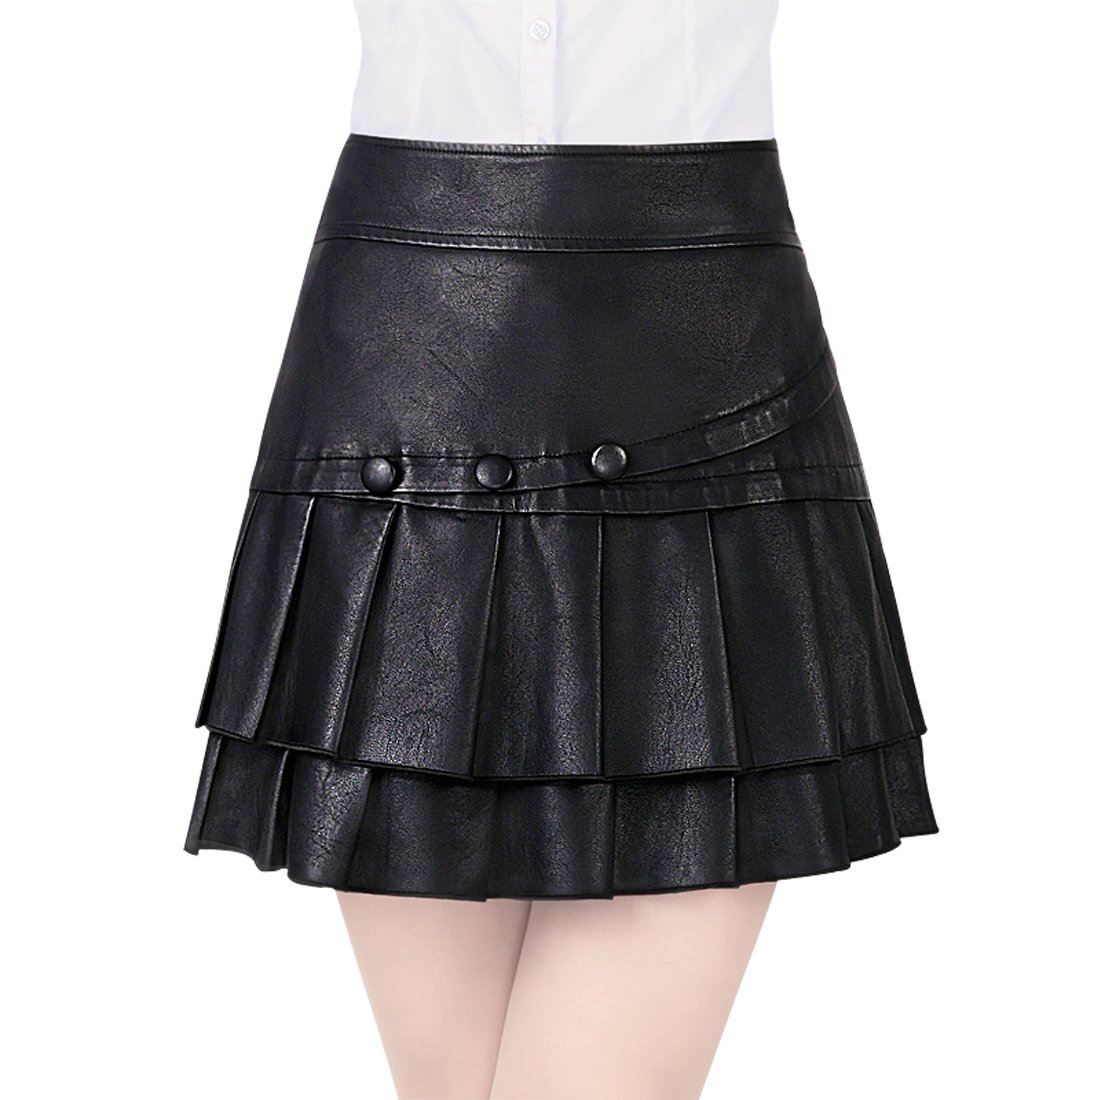 Wincolor Women's High Waist Faux Leather PU A-line Pleated Mini Skirt Culottes